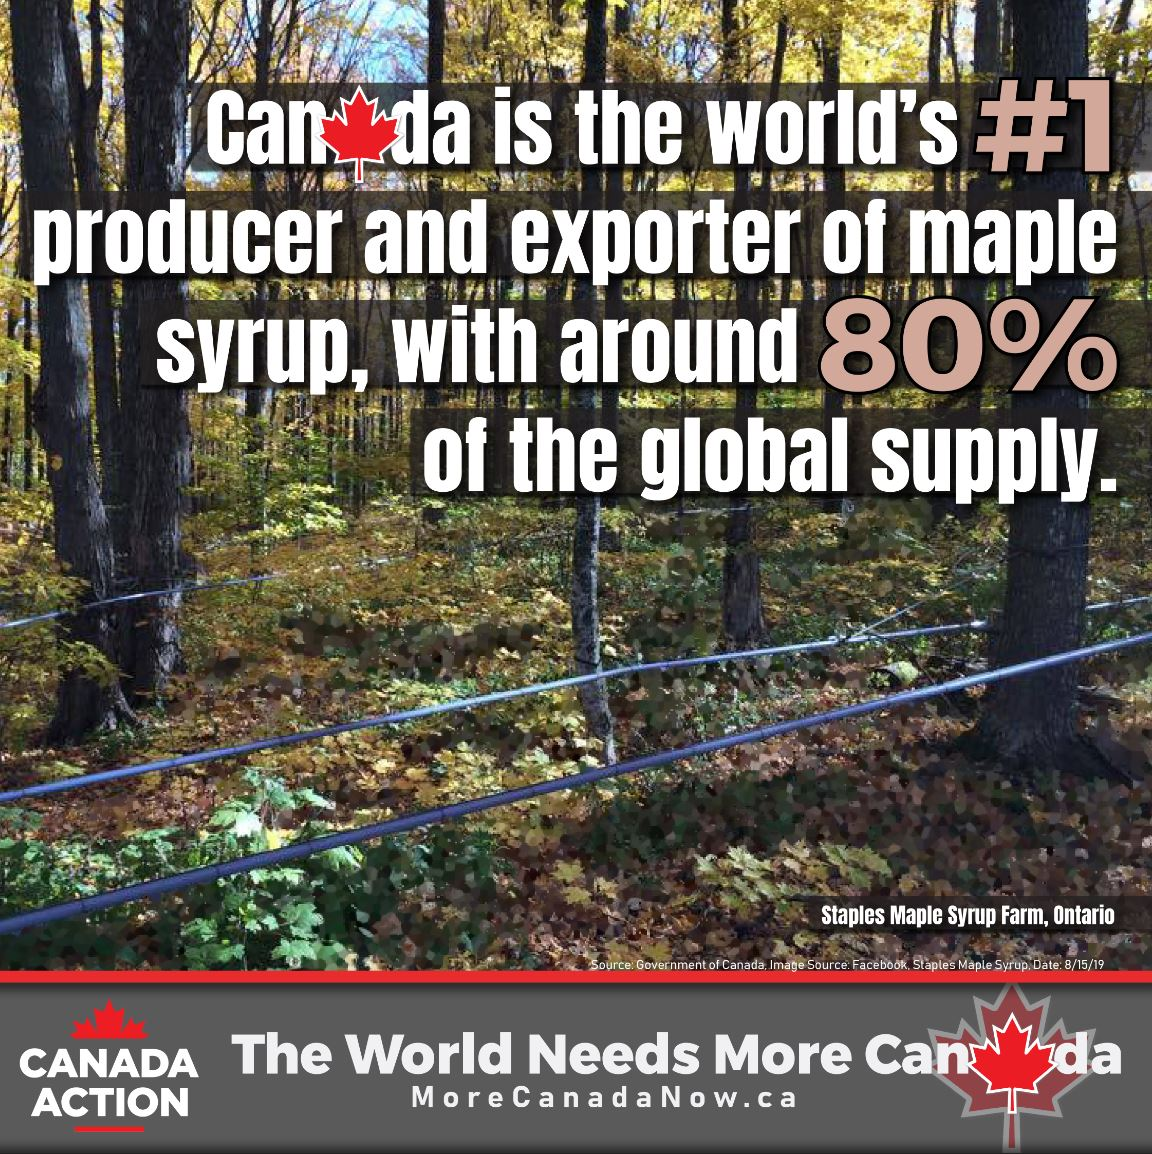 maple syrup farming in Canada - #1 producer and exporter